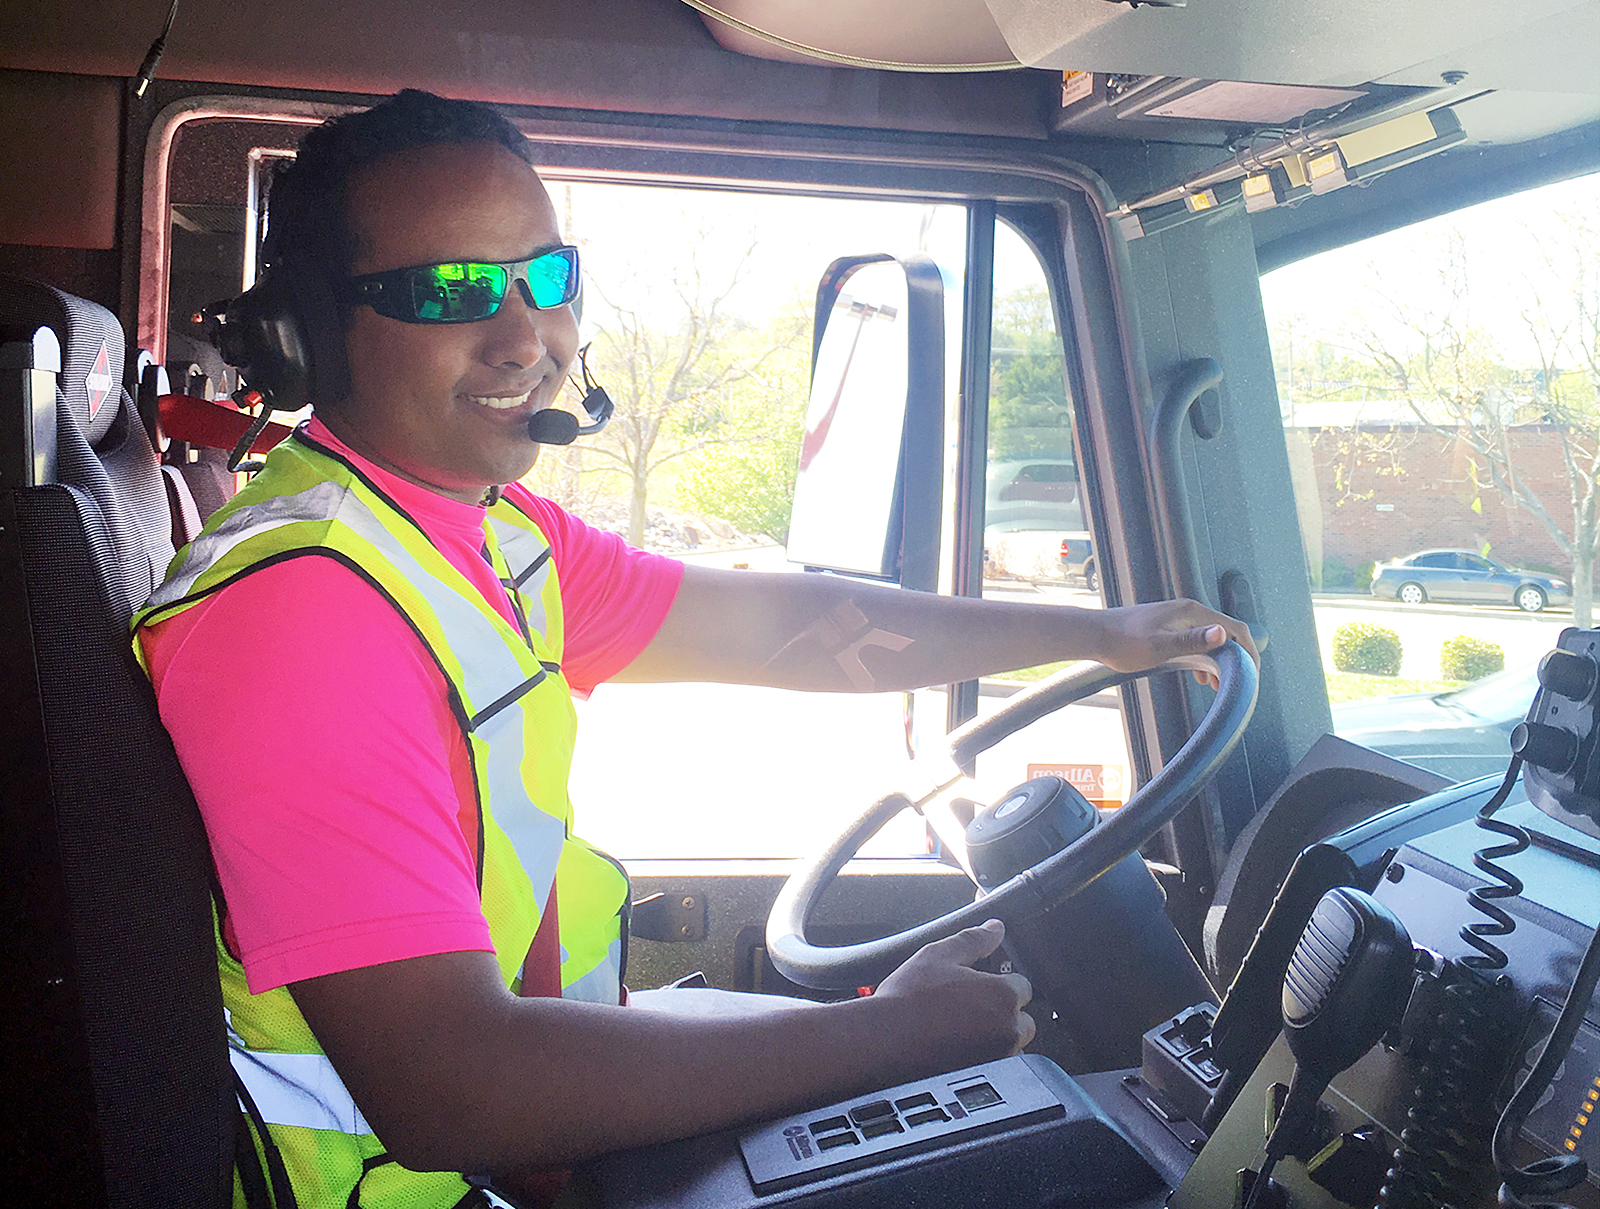 Masters of Public Health student Tobi Addis in driving emergency vehicle